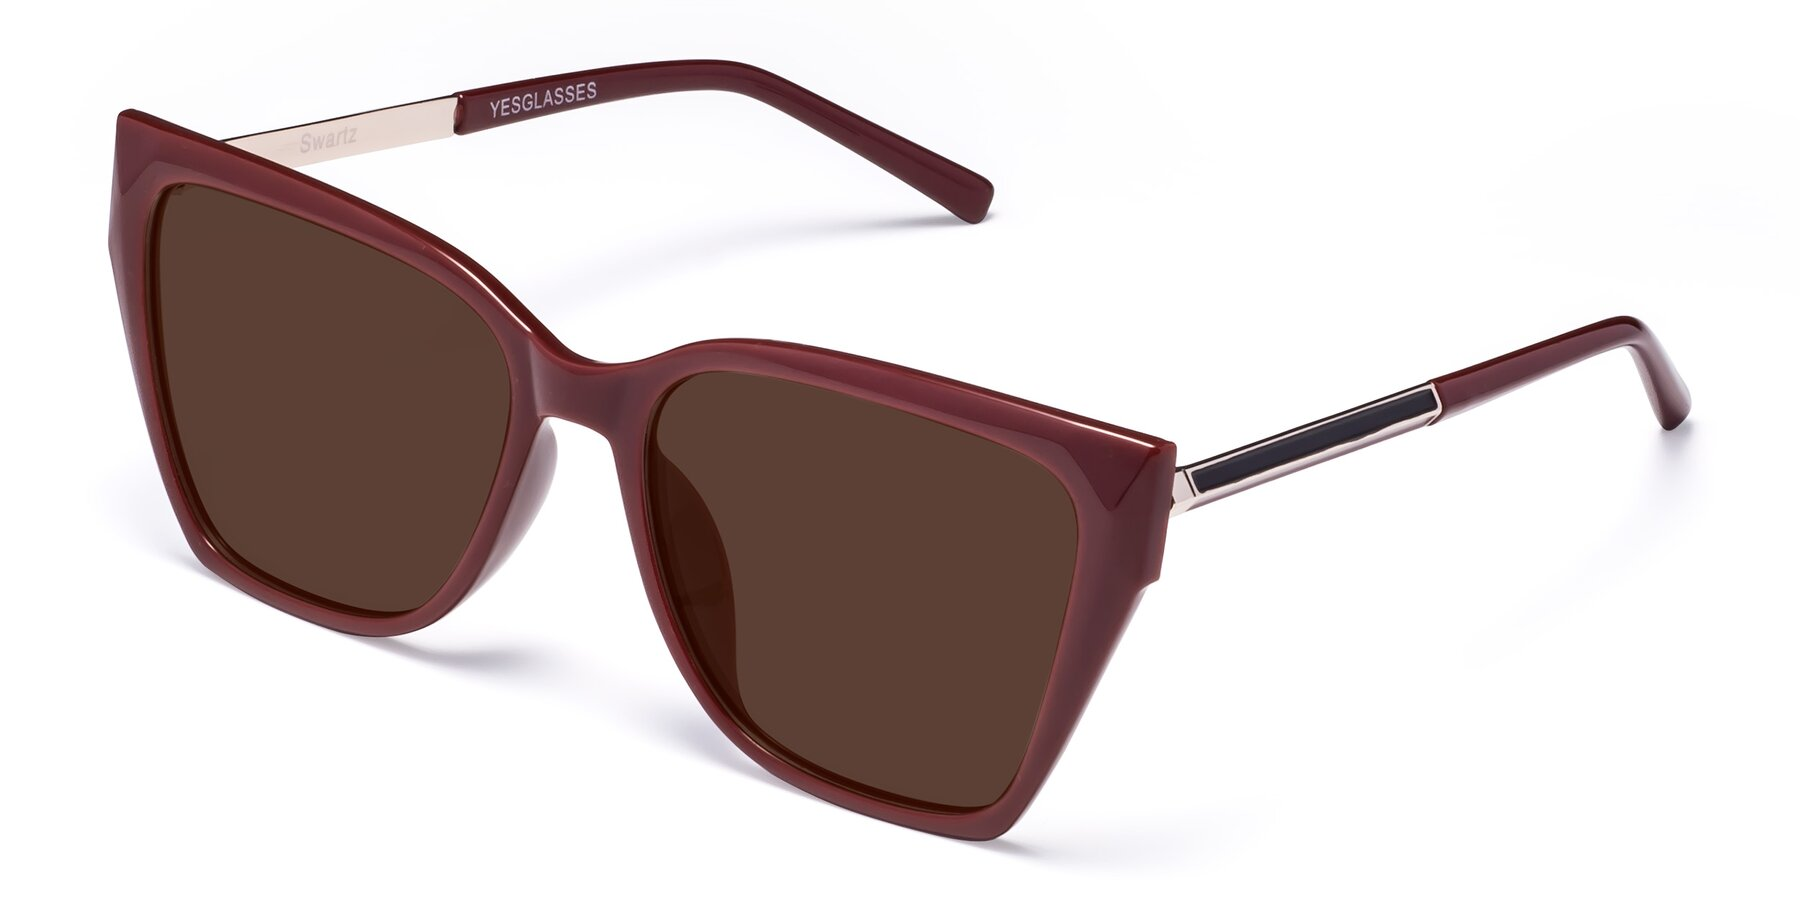 Angle of Swartz in Wine with Brown Tinted Lenses